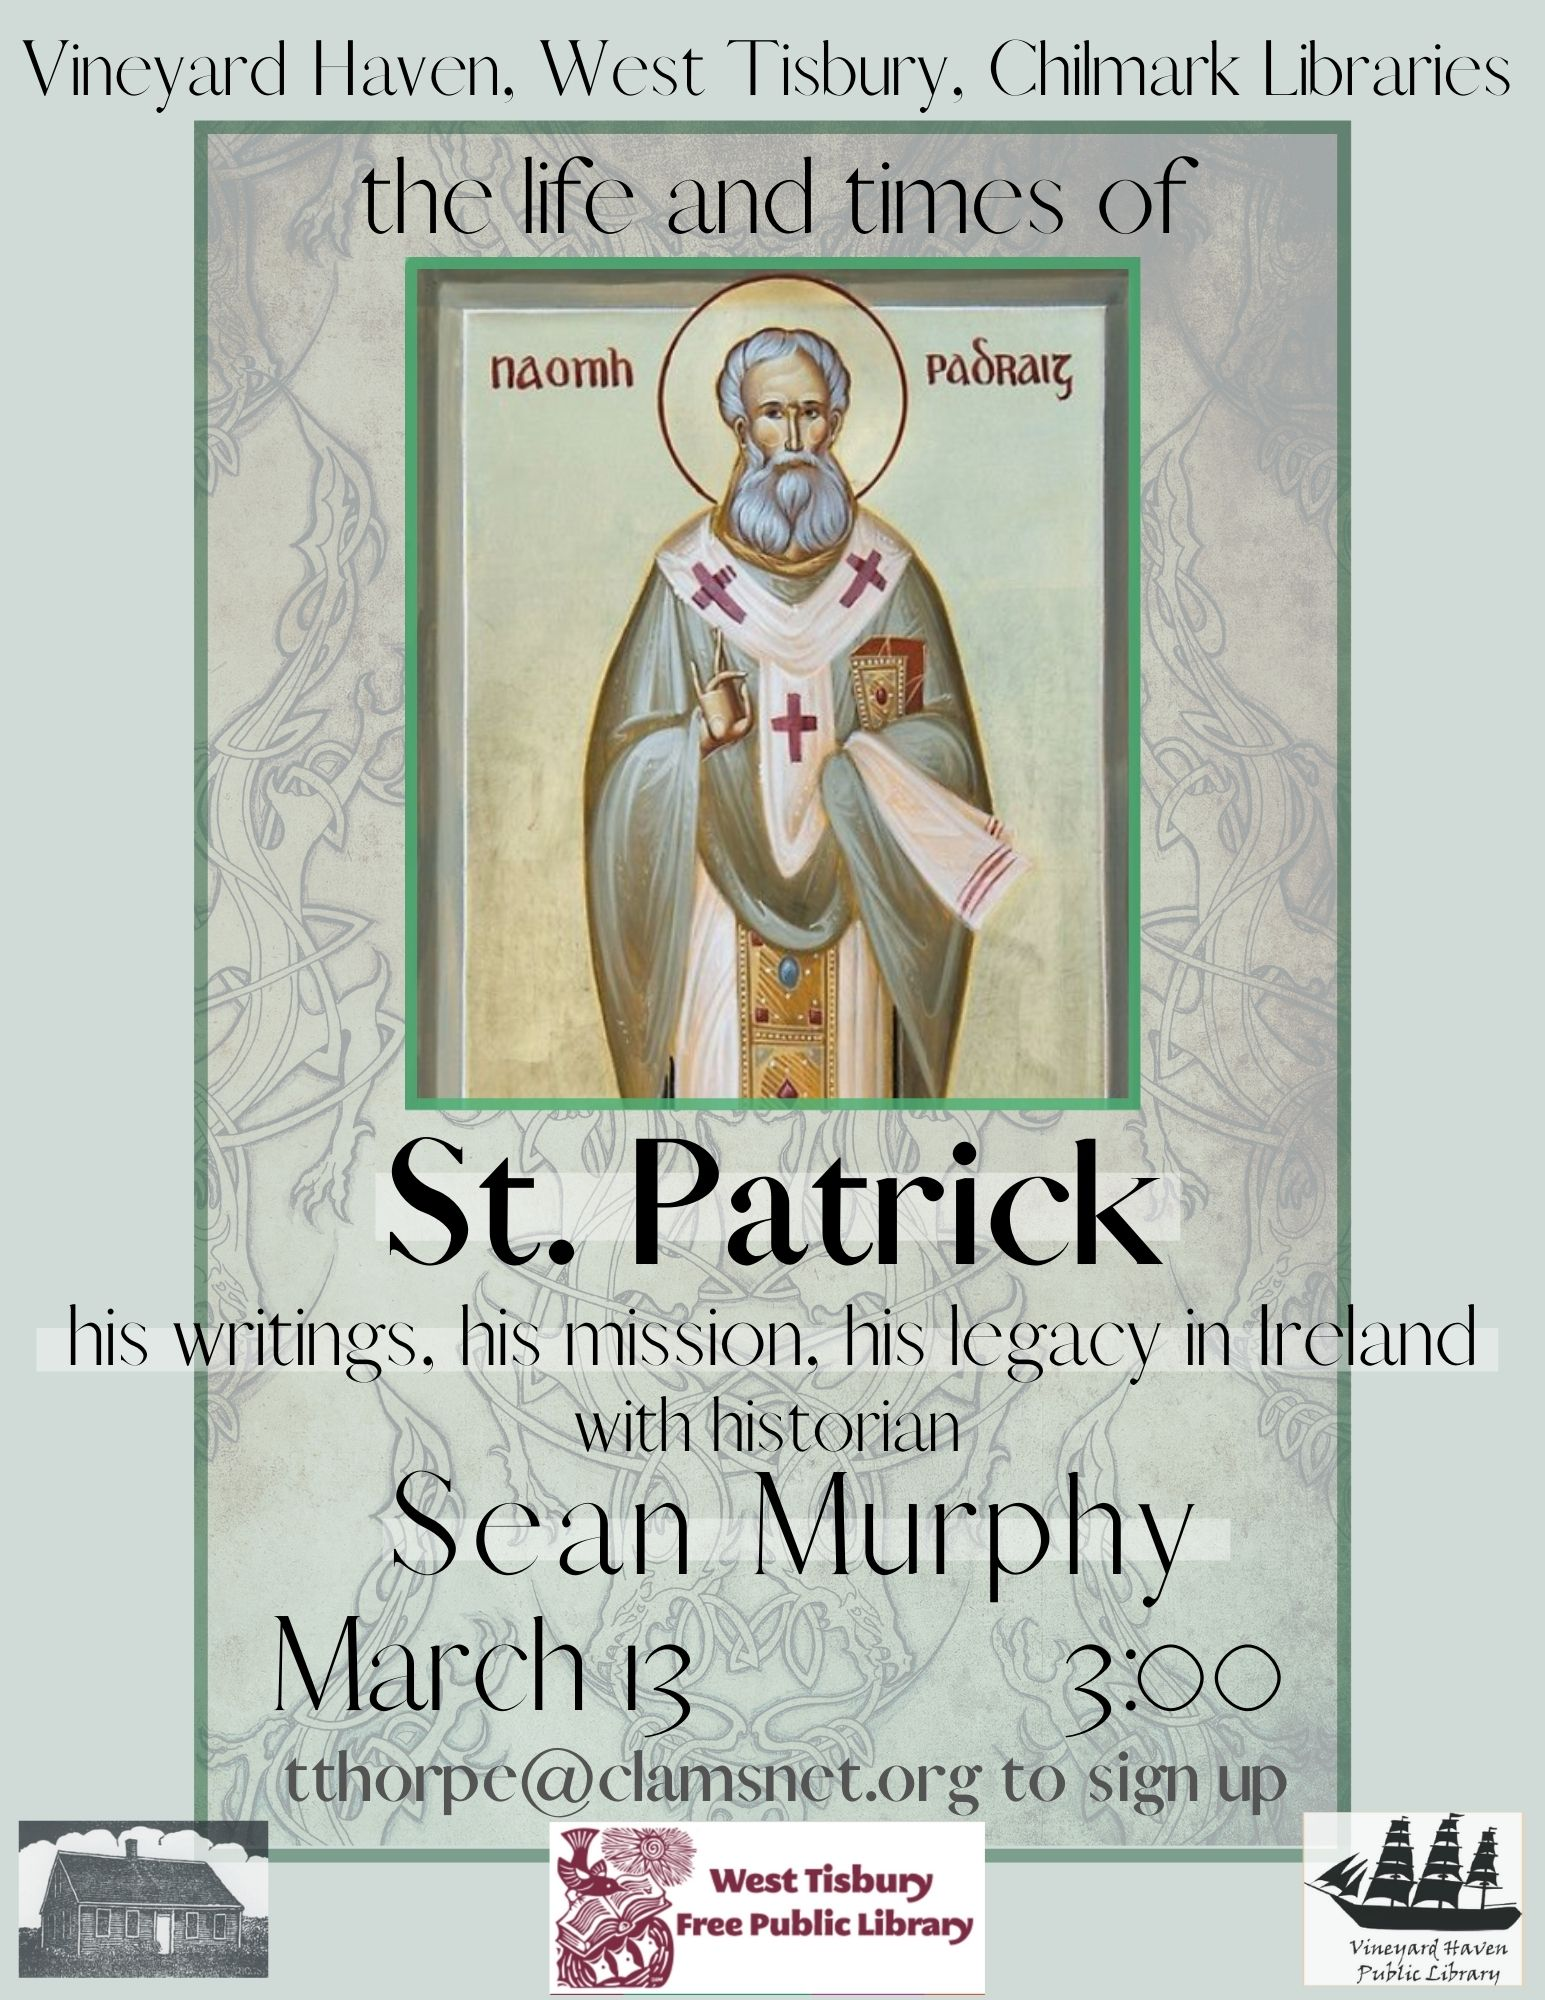 Online Talk: The Life and Times of St. Patrick